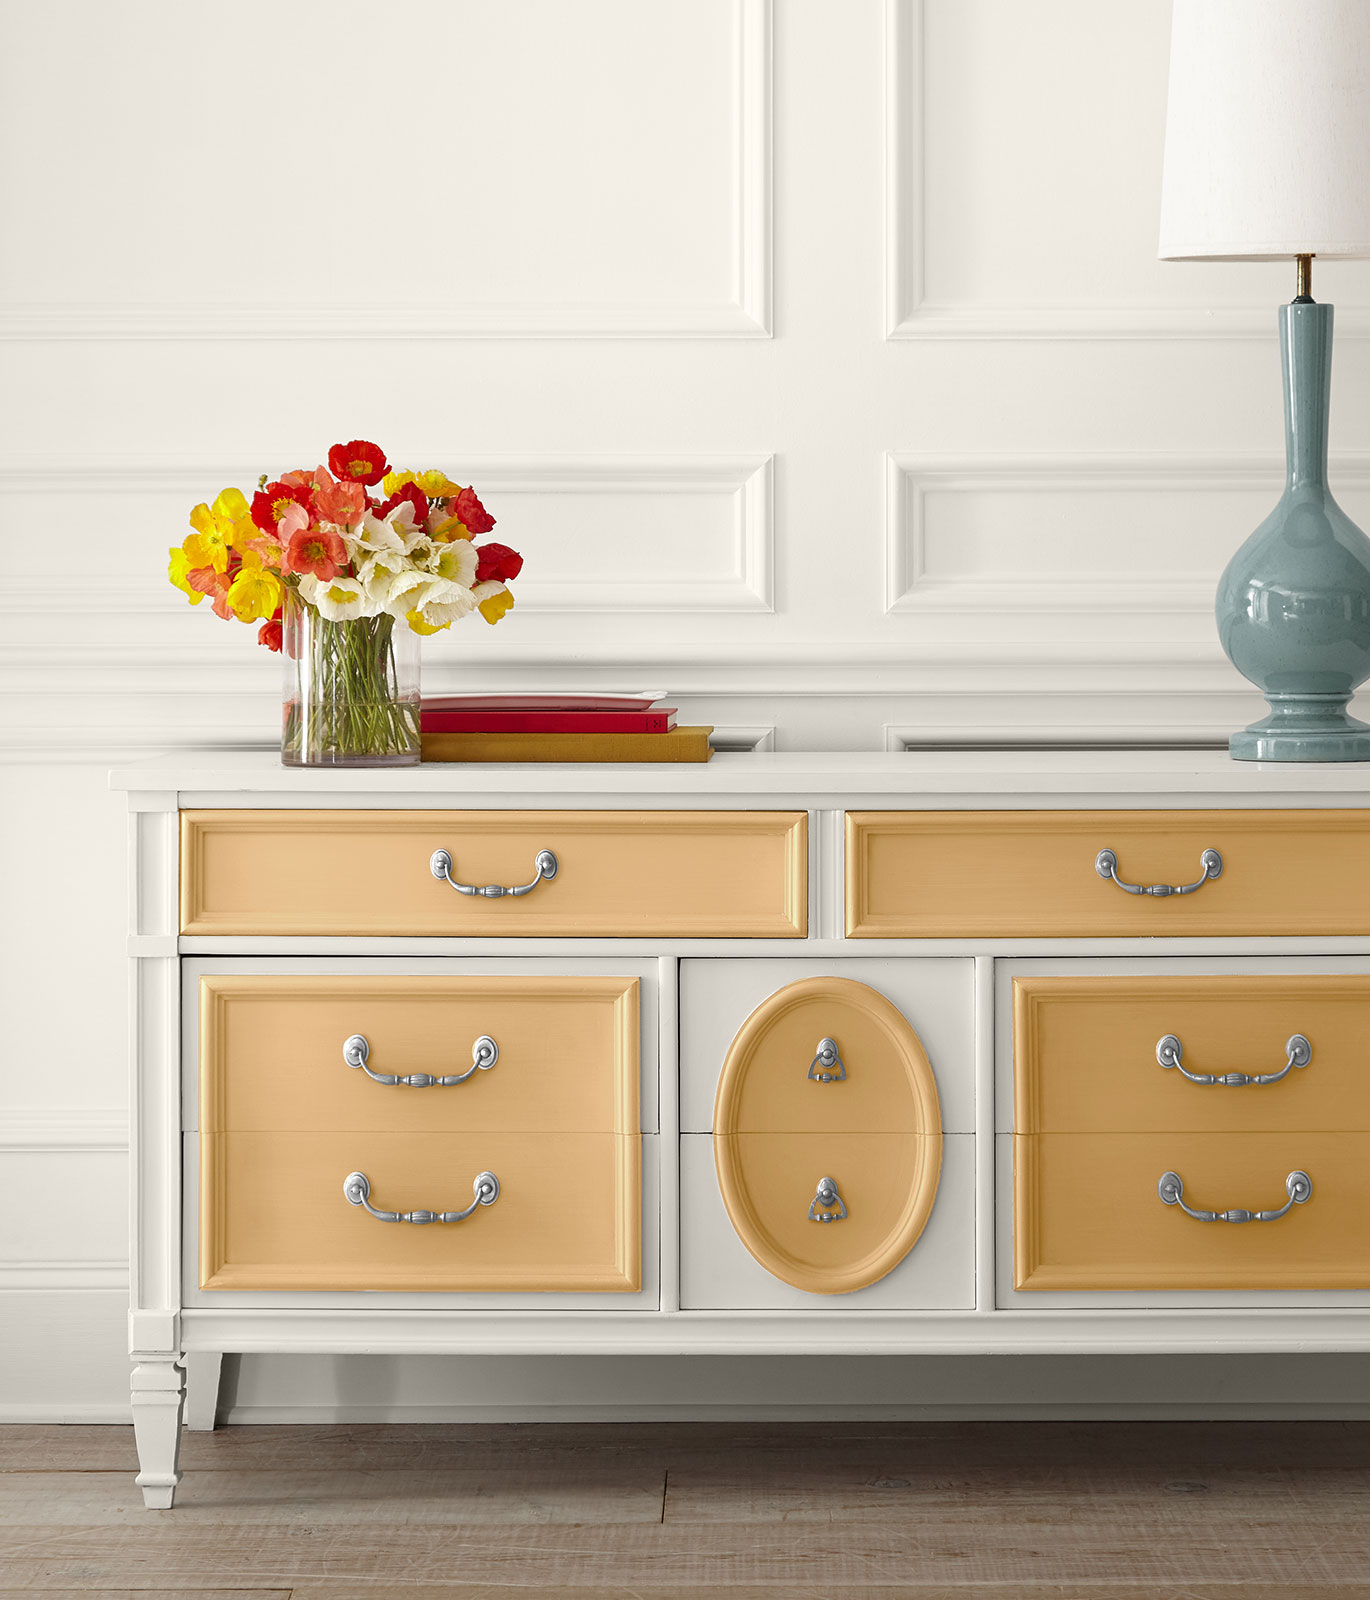 A dresser painted in white. To give a subtle pop of color, the drawer facings are painted in yellow-gold color.